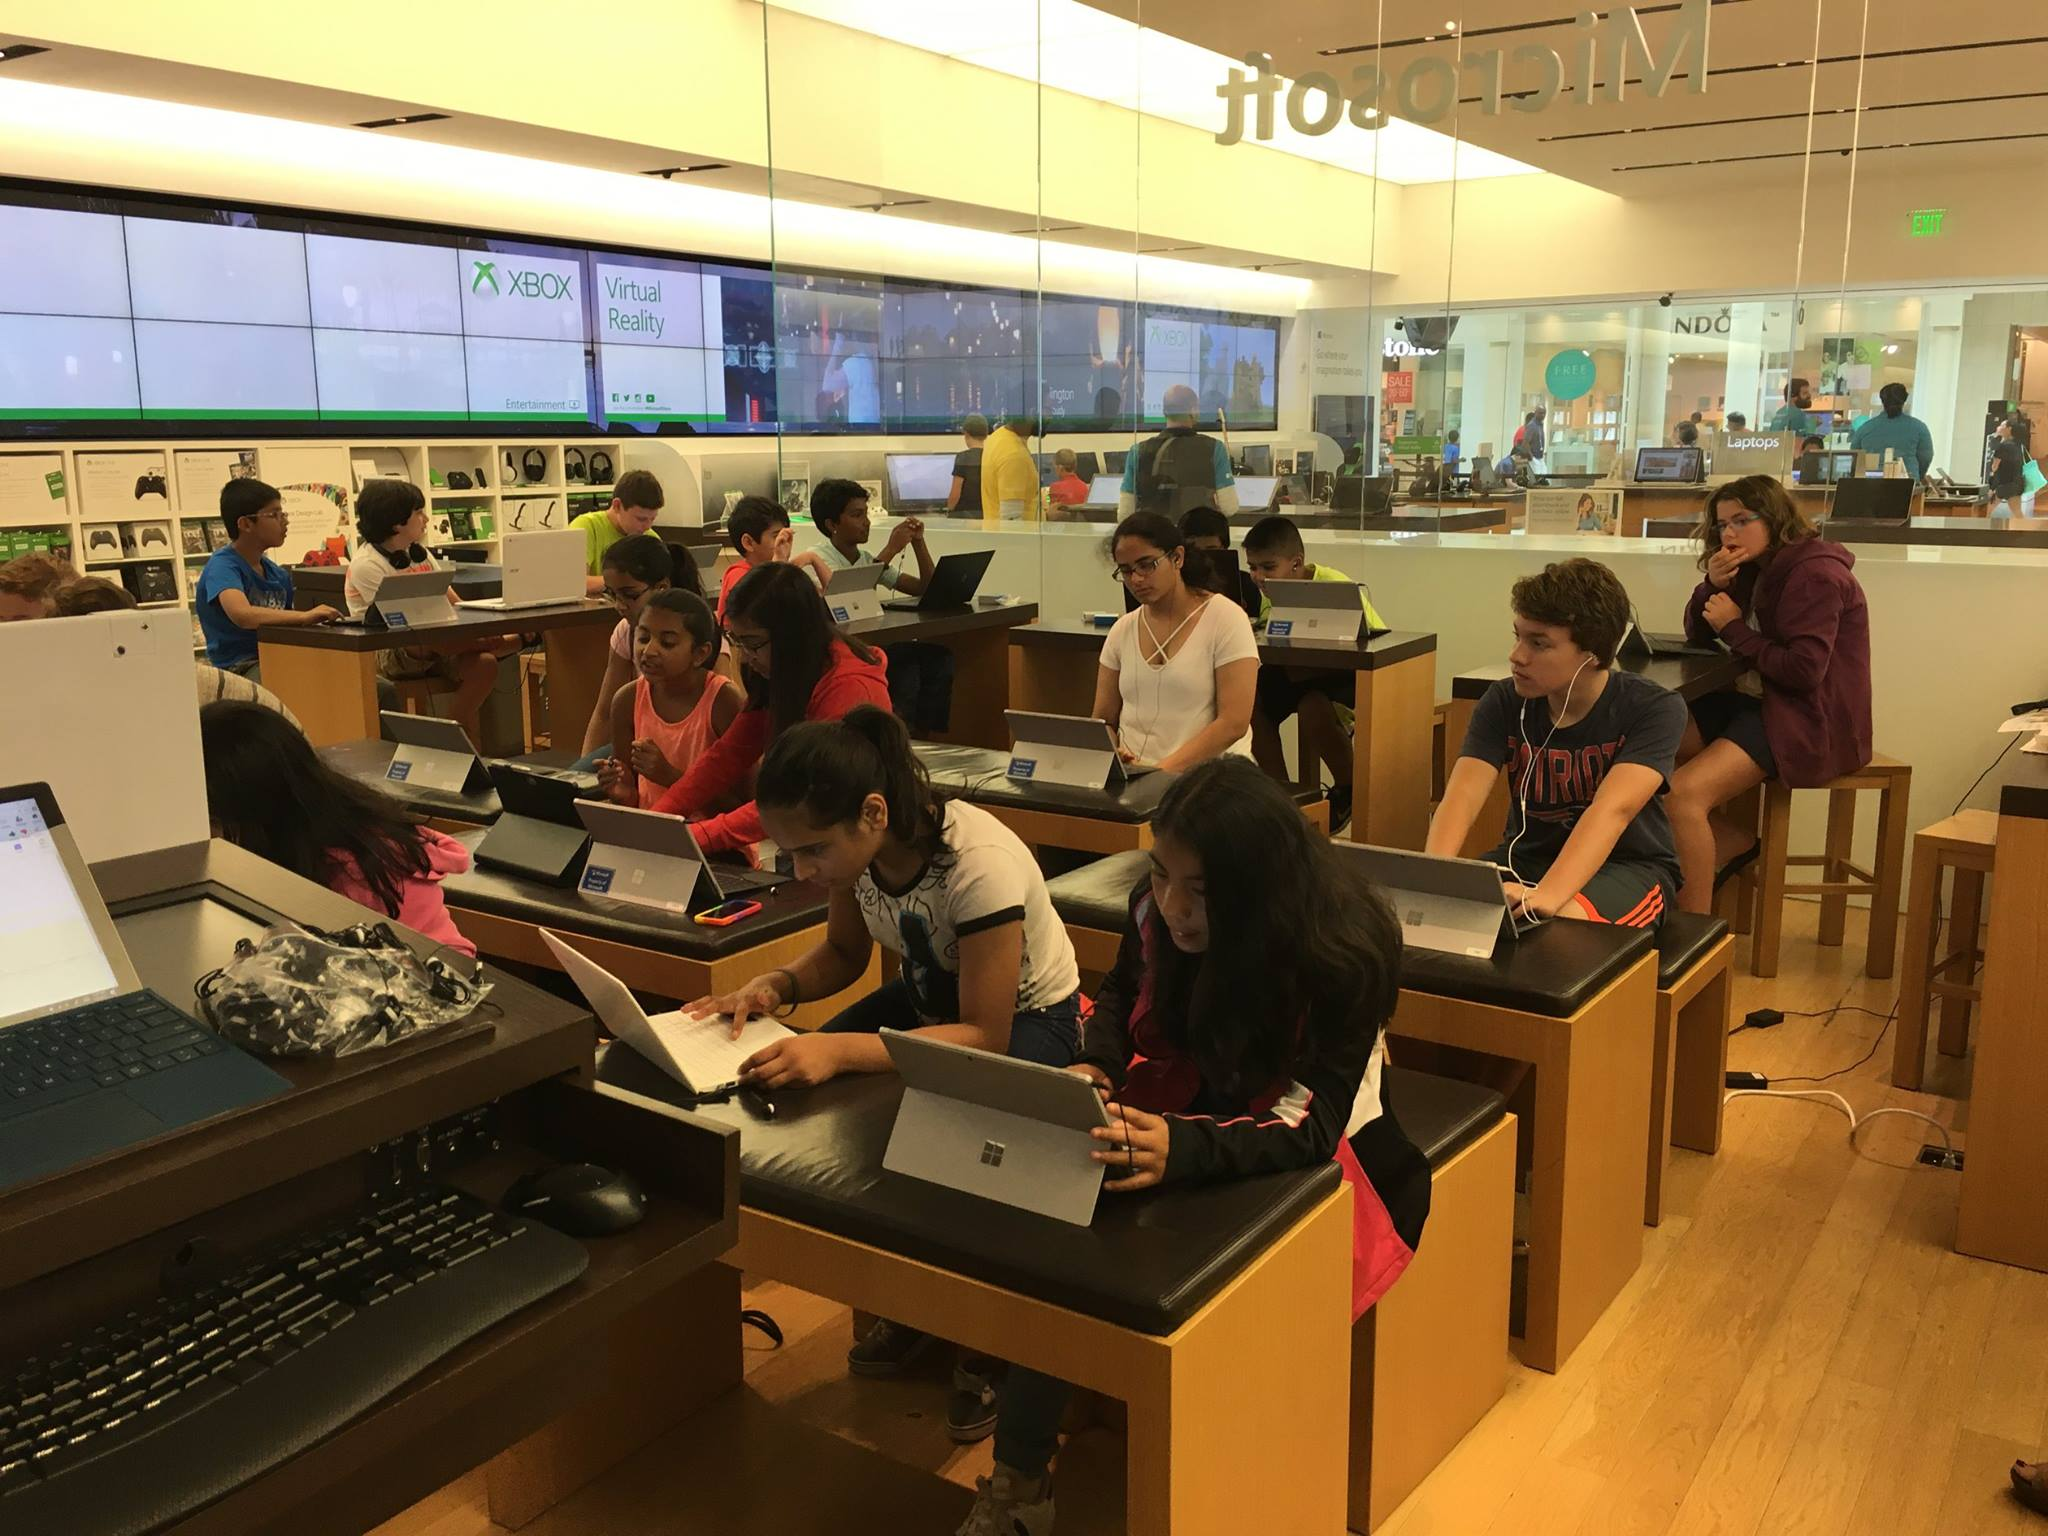 Building 92 microsoft store - We Will Assist Them At Every Step With Mentoring Debugging And Code Reviews To Make Sure They Succeed No Experience Is Required